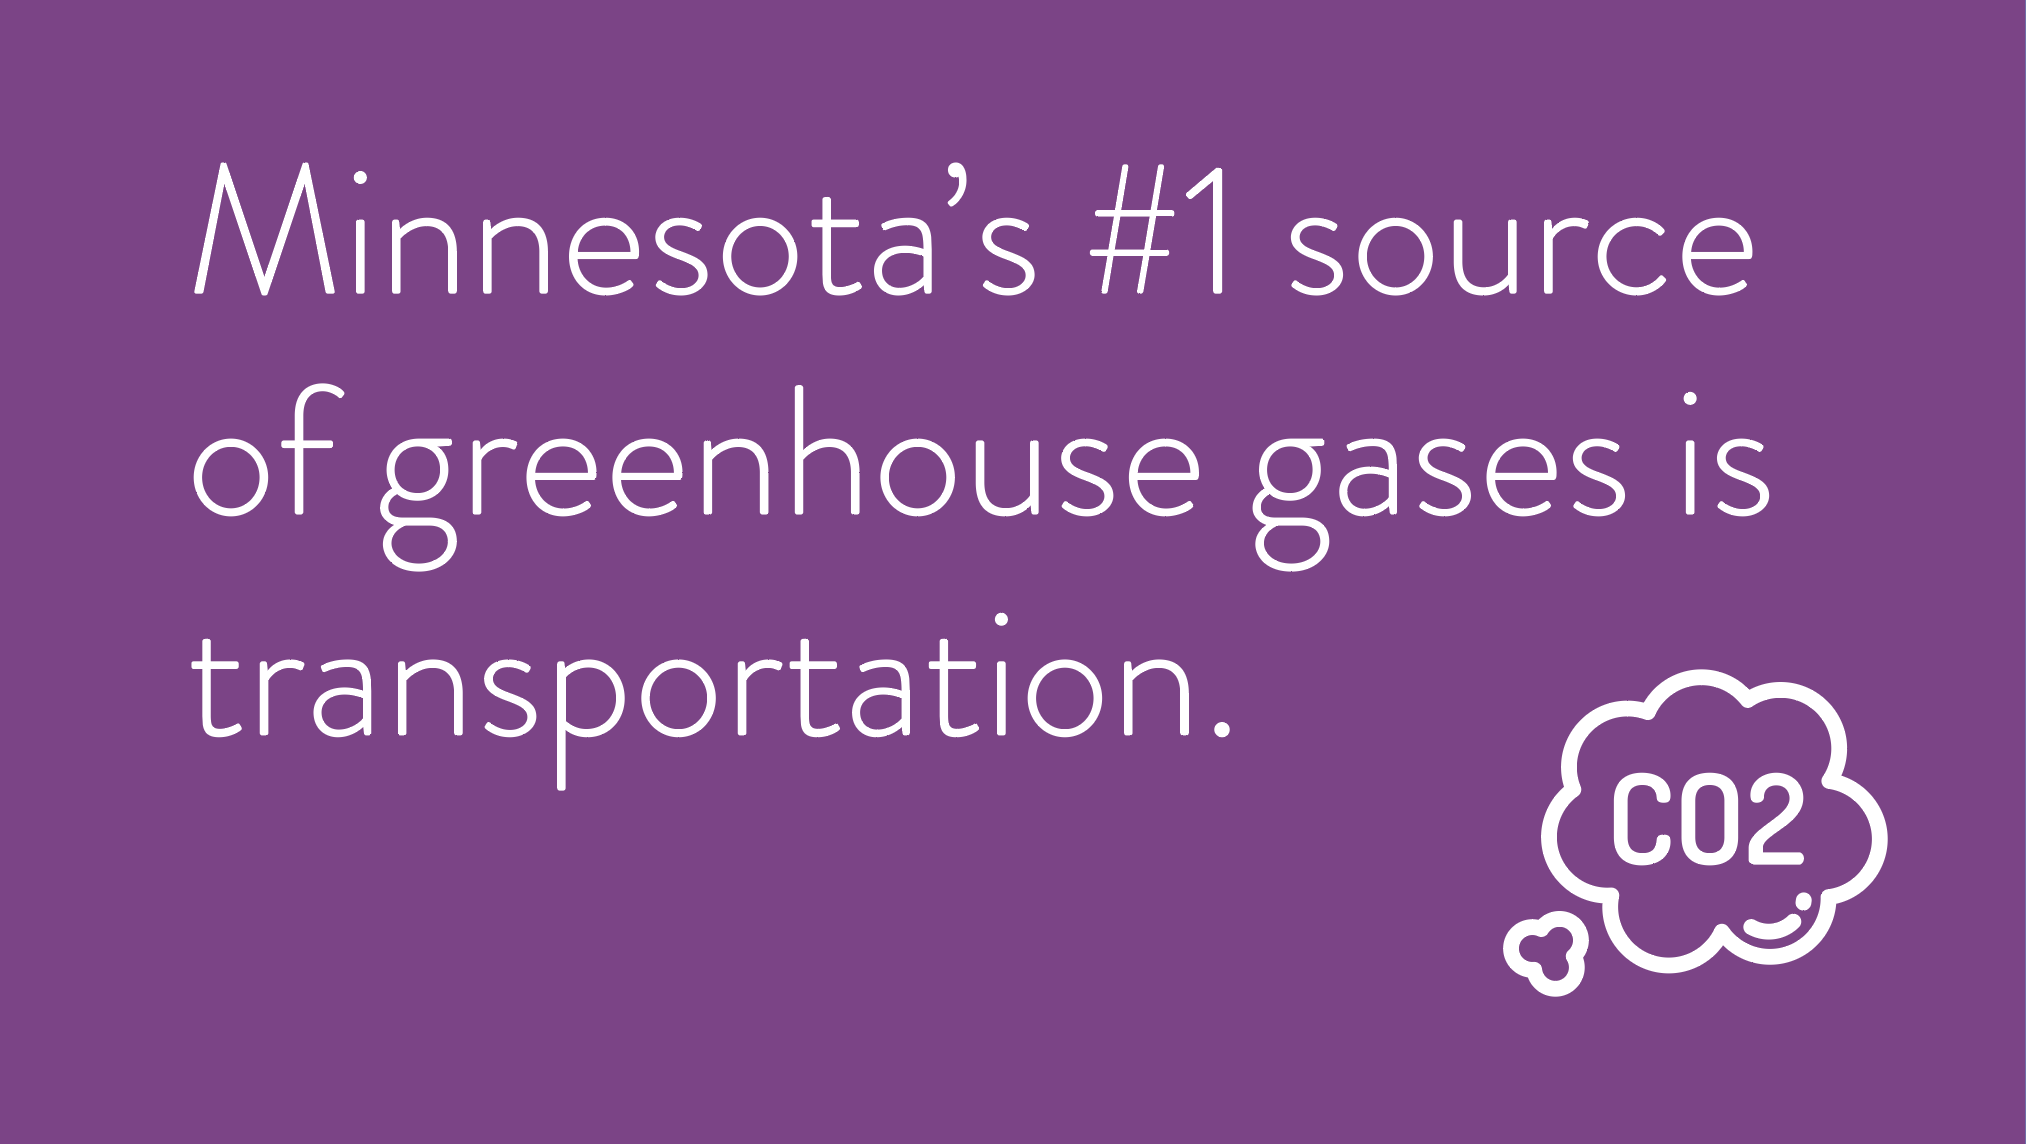 Minnesota's #1 source of greenhouse gases is transportation.